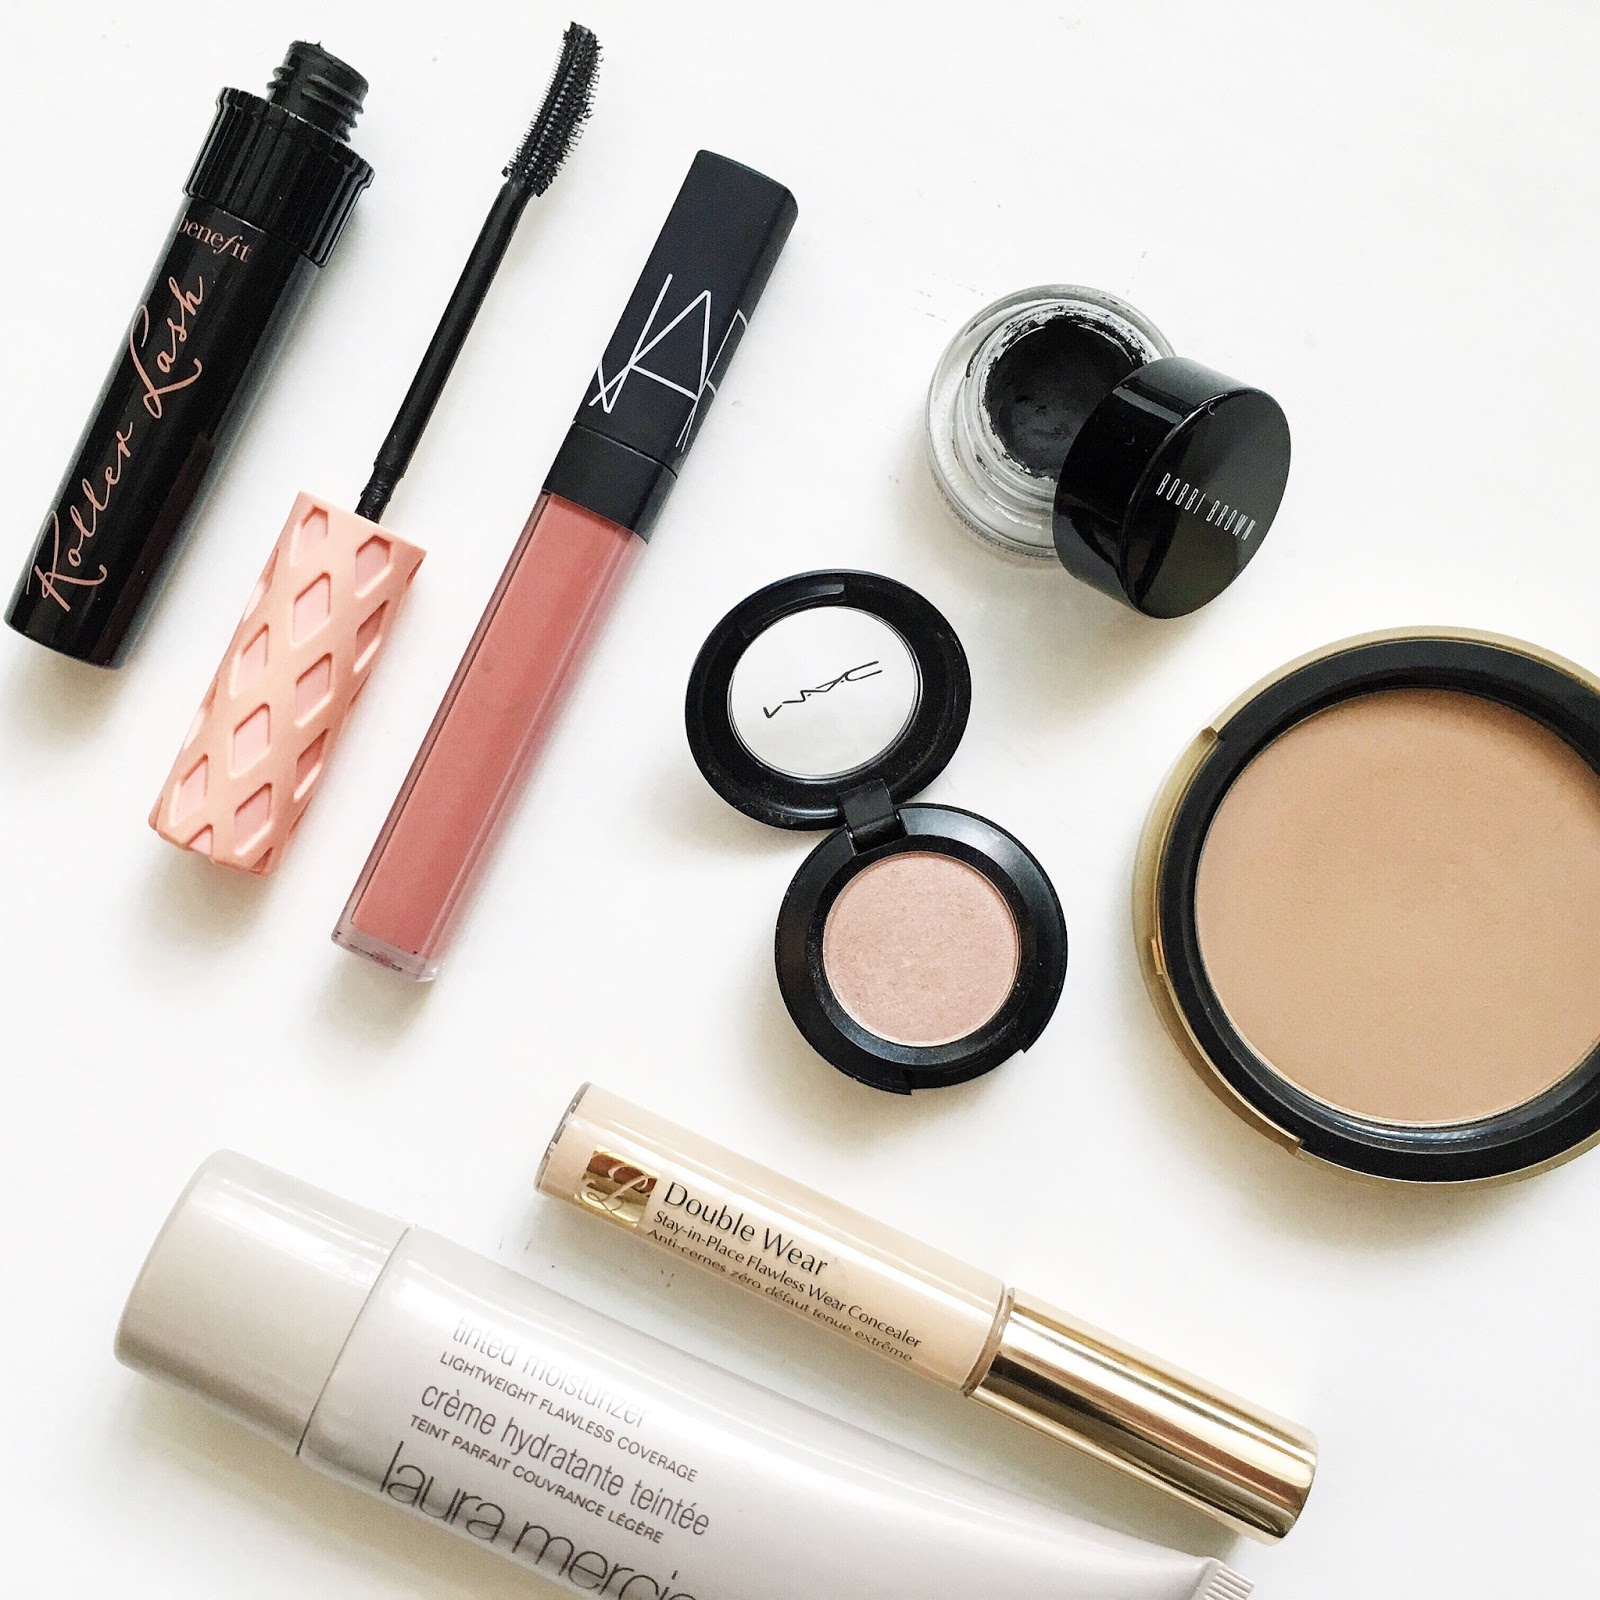 My favourite beauty products that have reached holy grail status from brands like NARS, MAC, Laura Mercier and Estée Lauder.